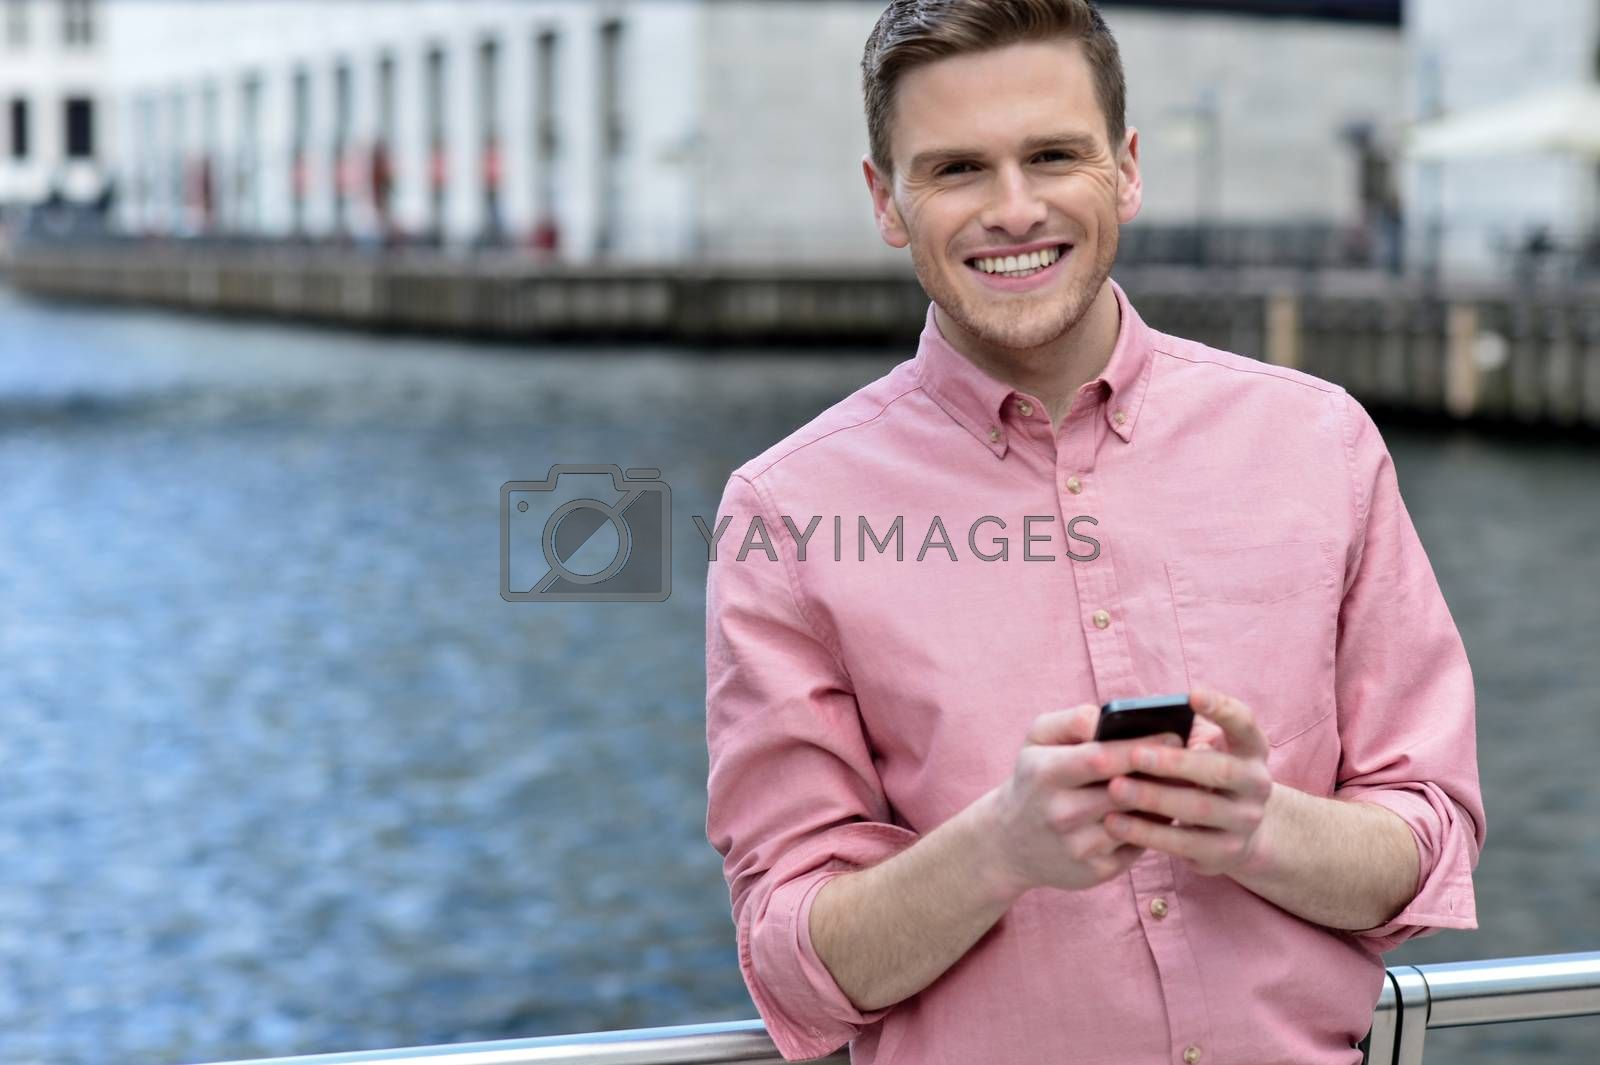 Happy young man posing with his mobile phone